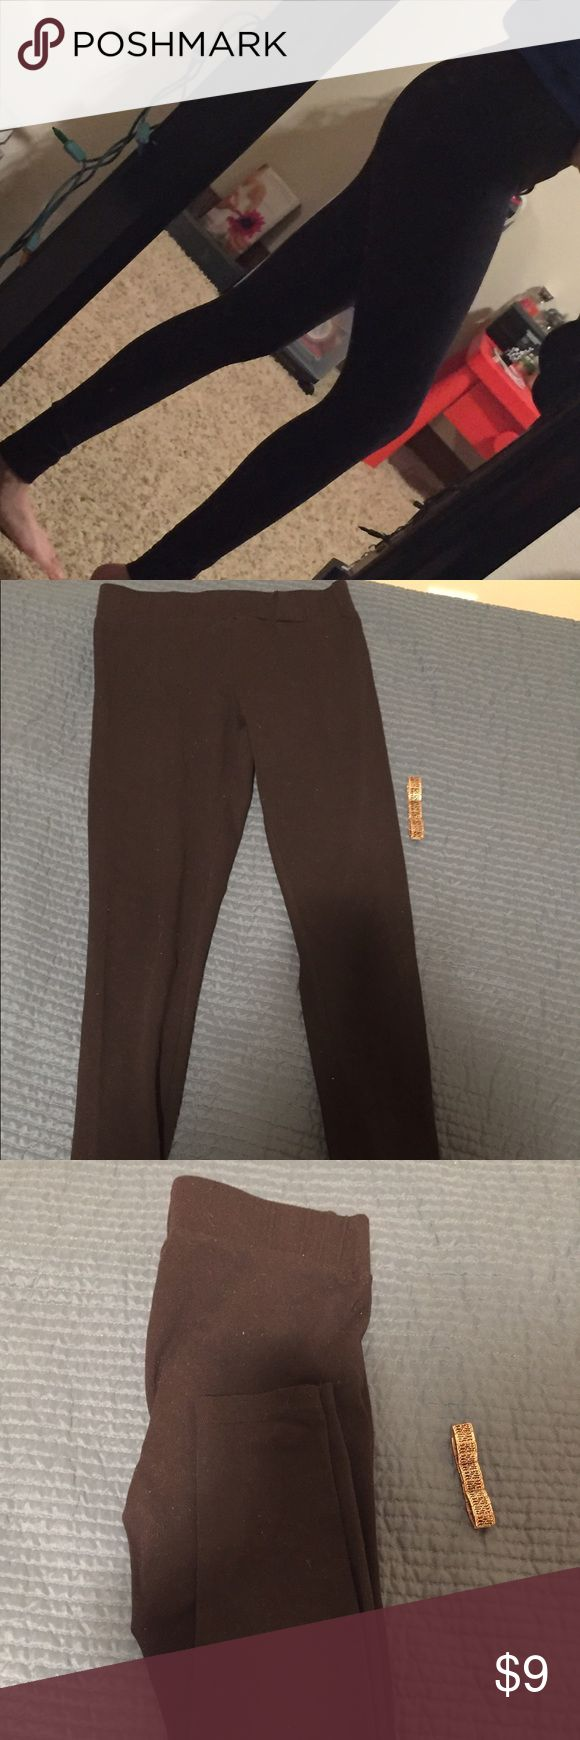 Thick Black Leggings These leggings are made out of a thicker material making them perfect for colder weather. They are also stretchy, saying that these could also pass as a small or even medium. I use small, mostly medium sized leggings and they fit me. Only worn once Matty m Pants Leggings